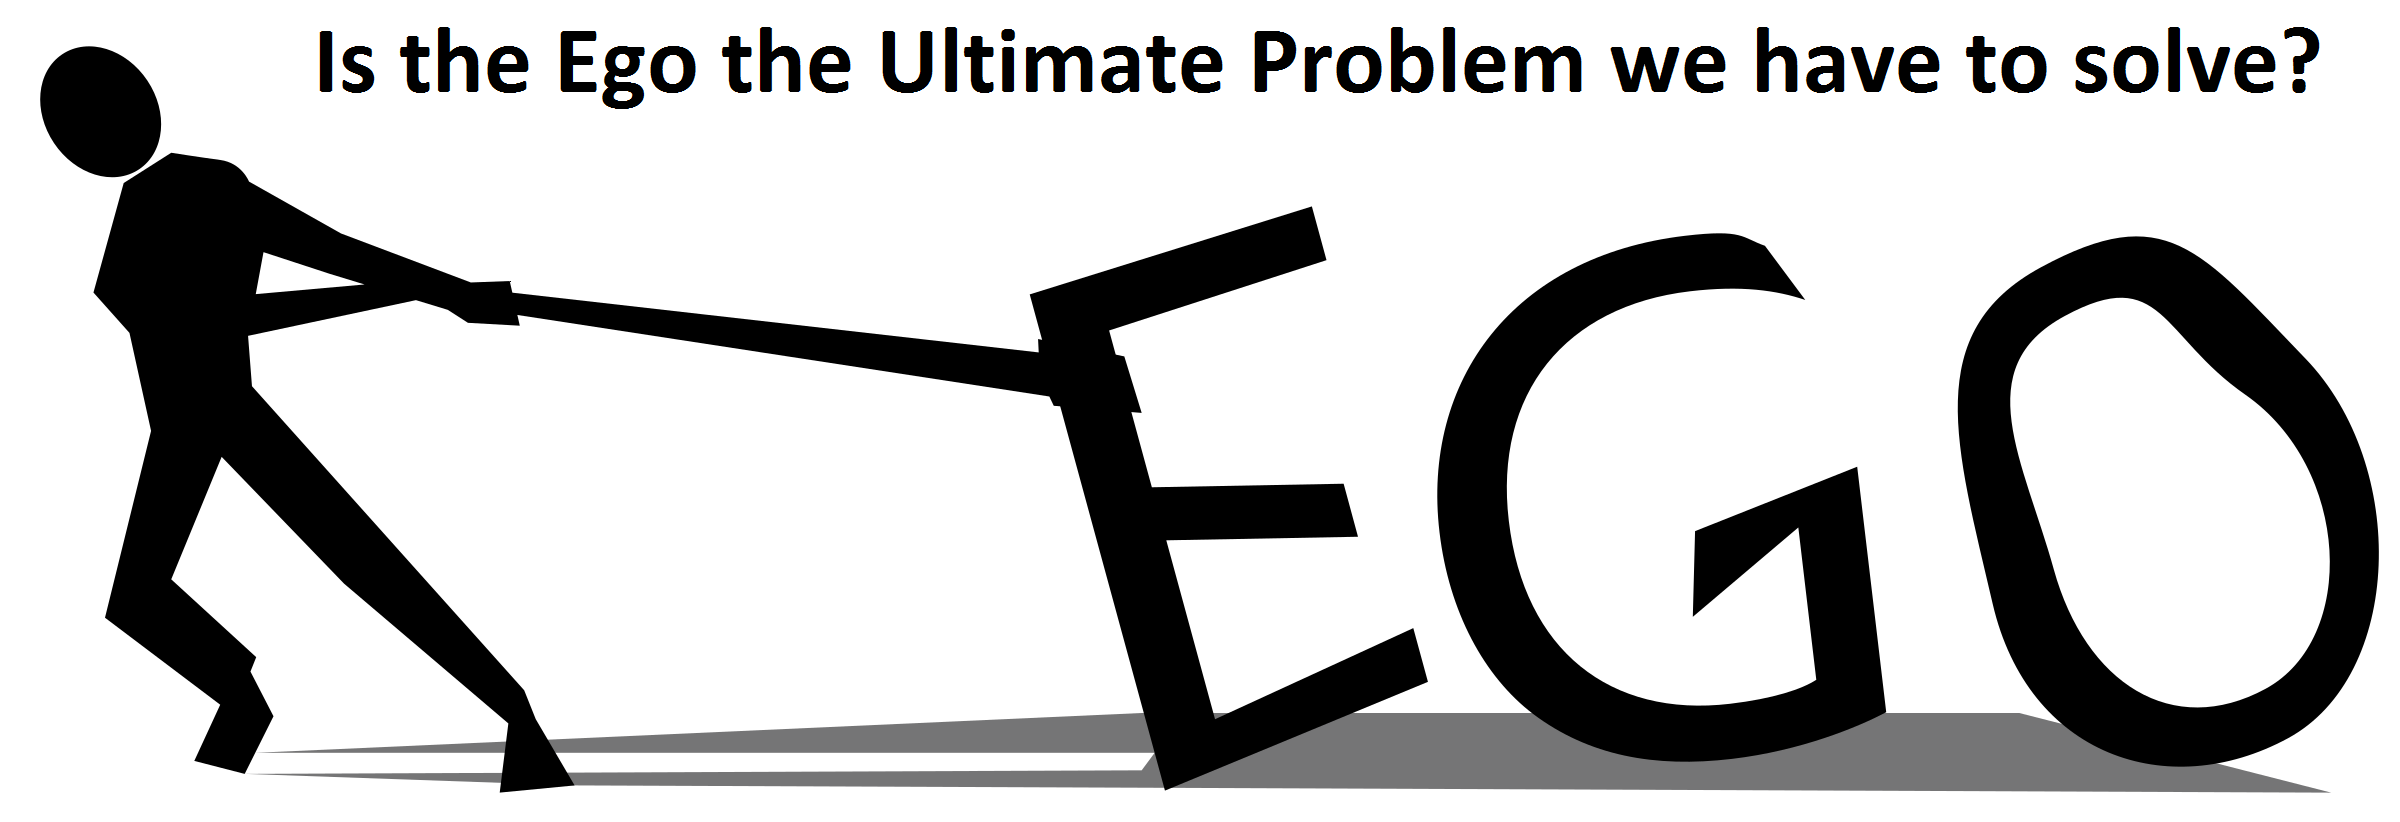 Is the Ego the Ultimate Problem ever have to solve?